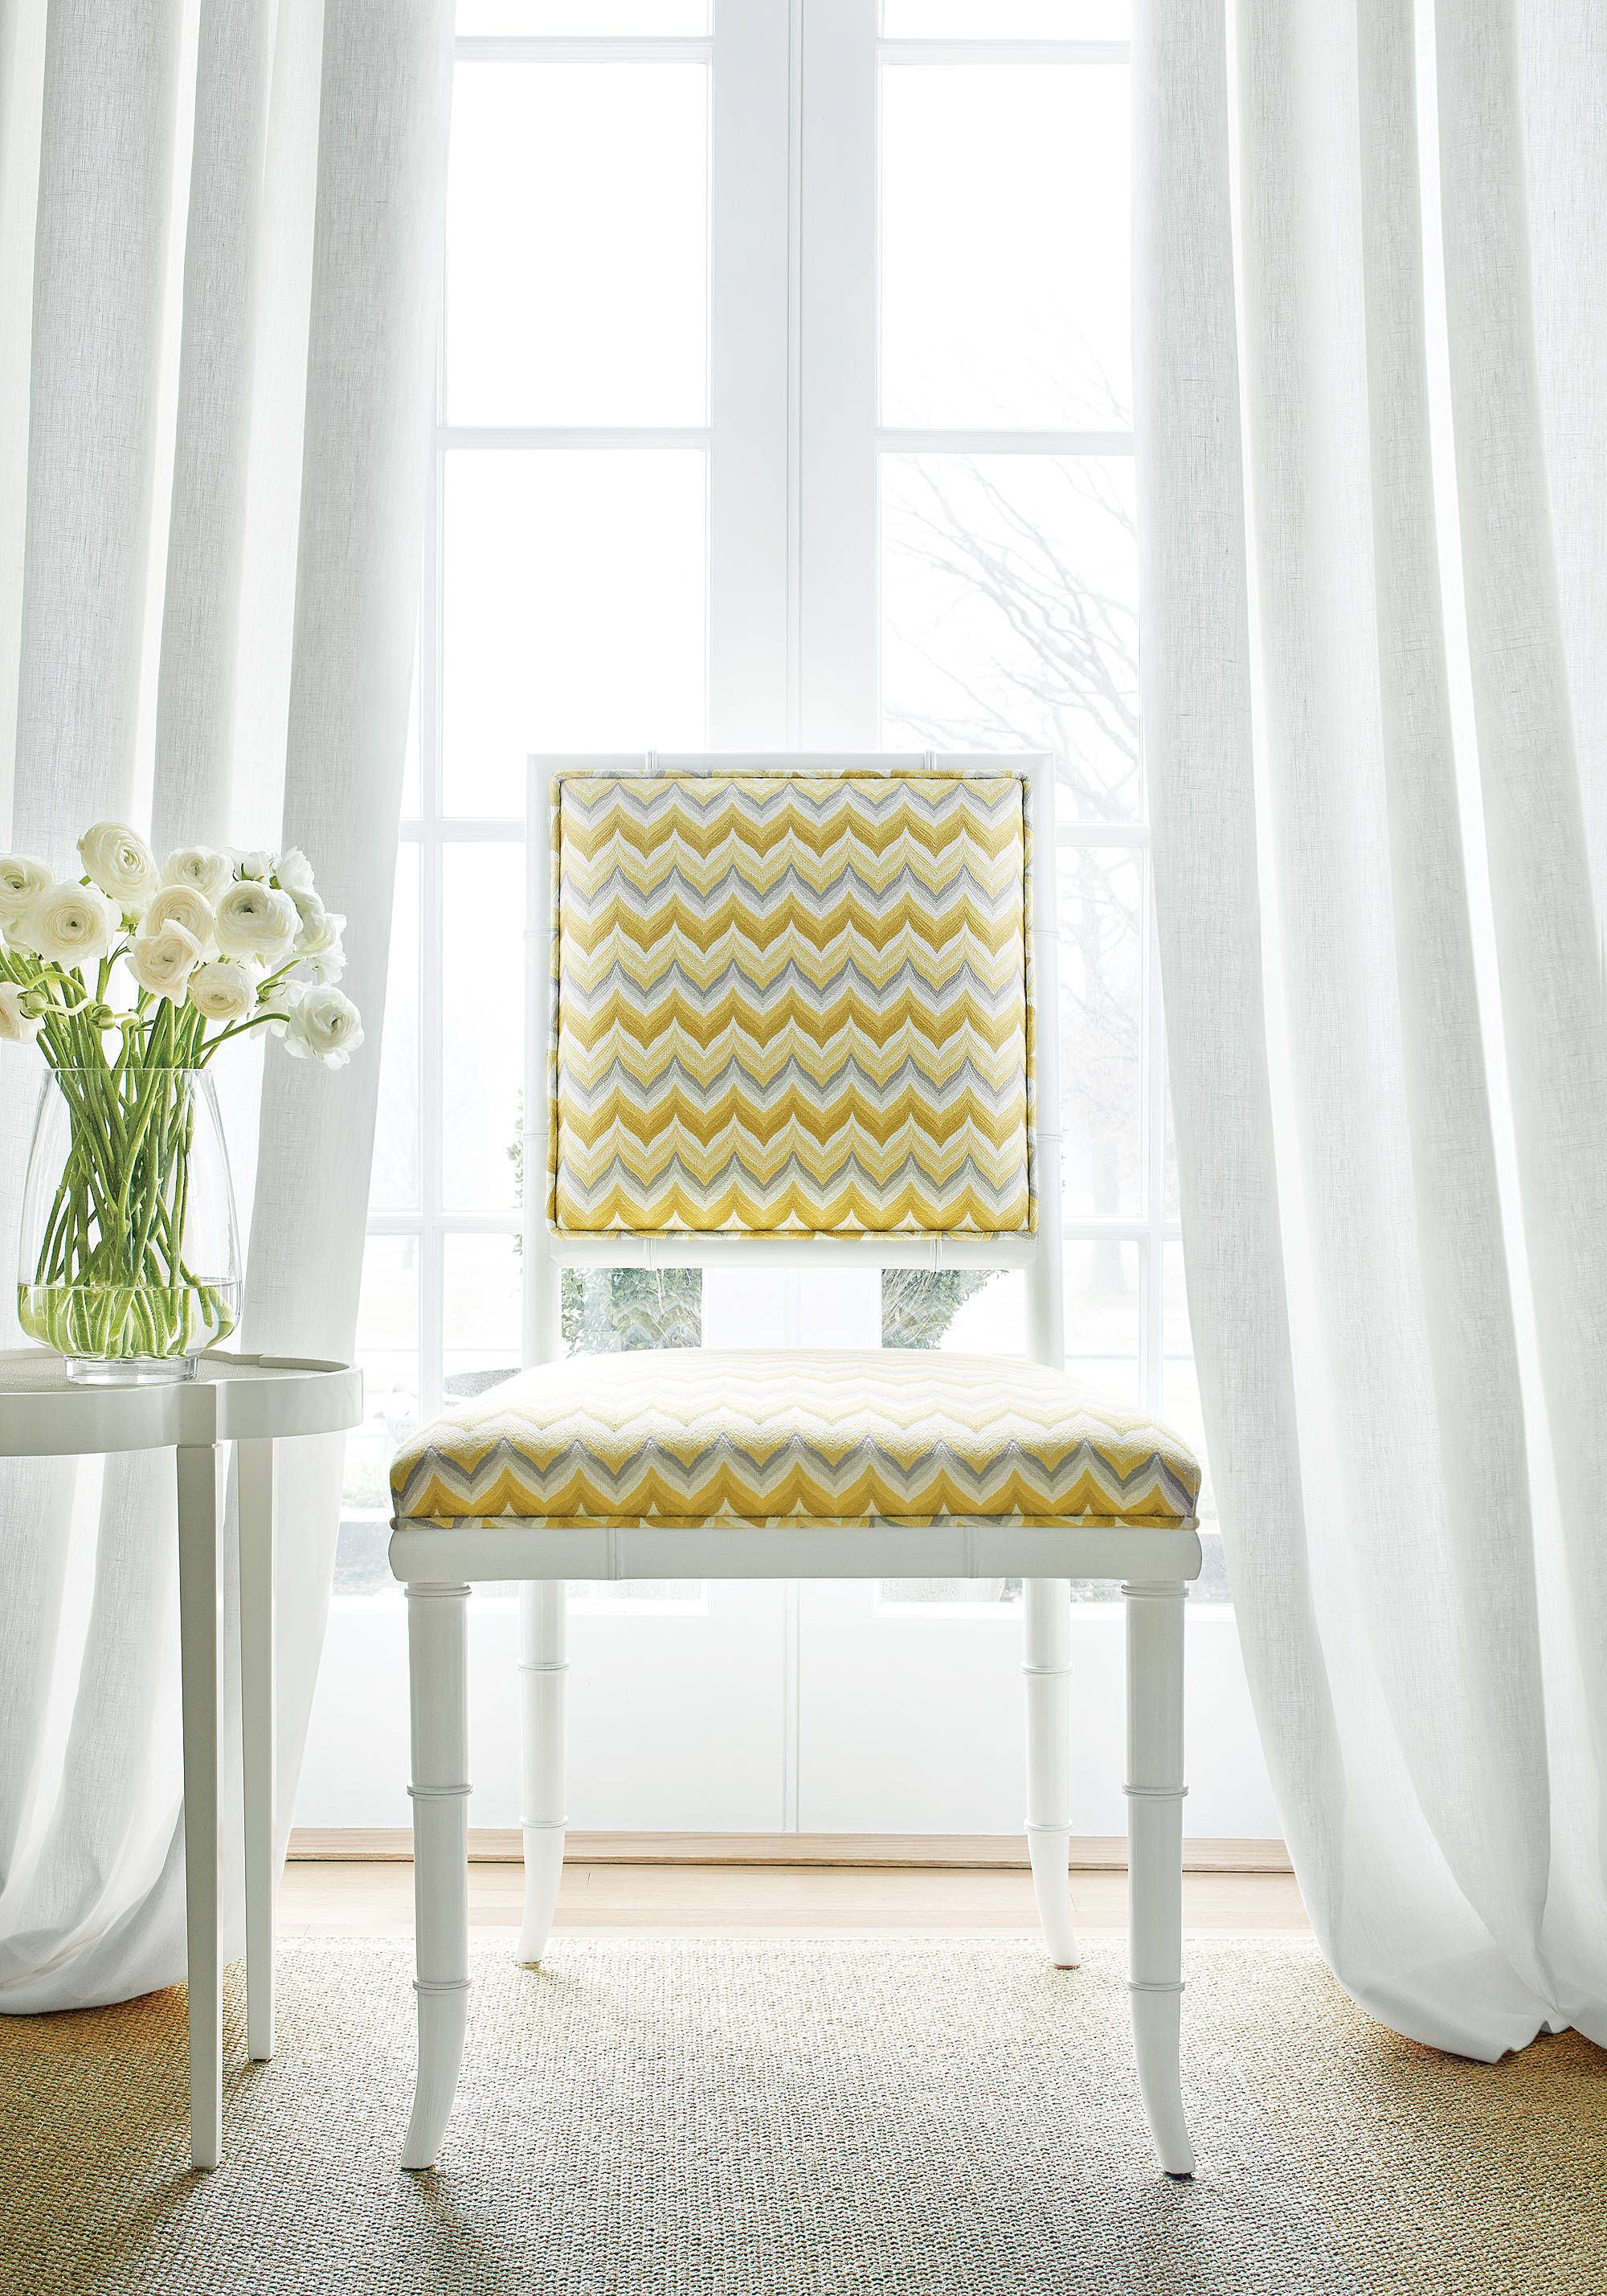 Delightful Dairen Chair From Thibaut Fine Furniture In Miura Woven Fabric In Lemon And  Smoke